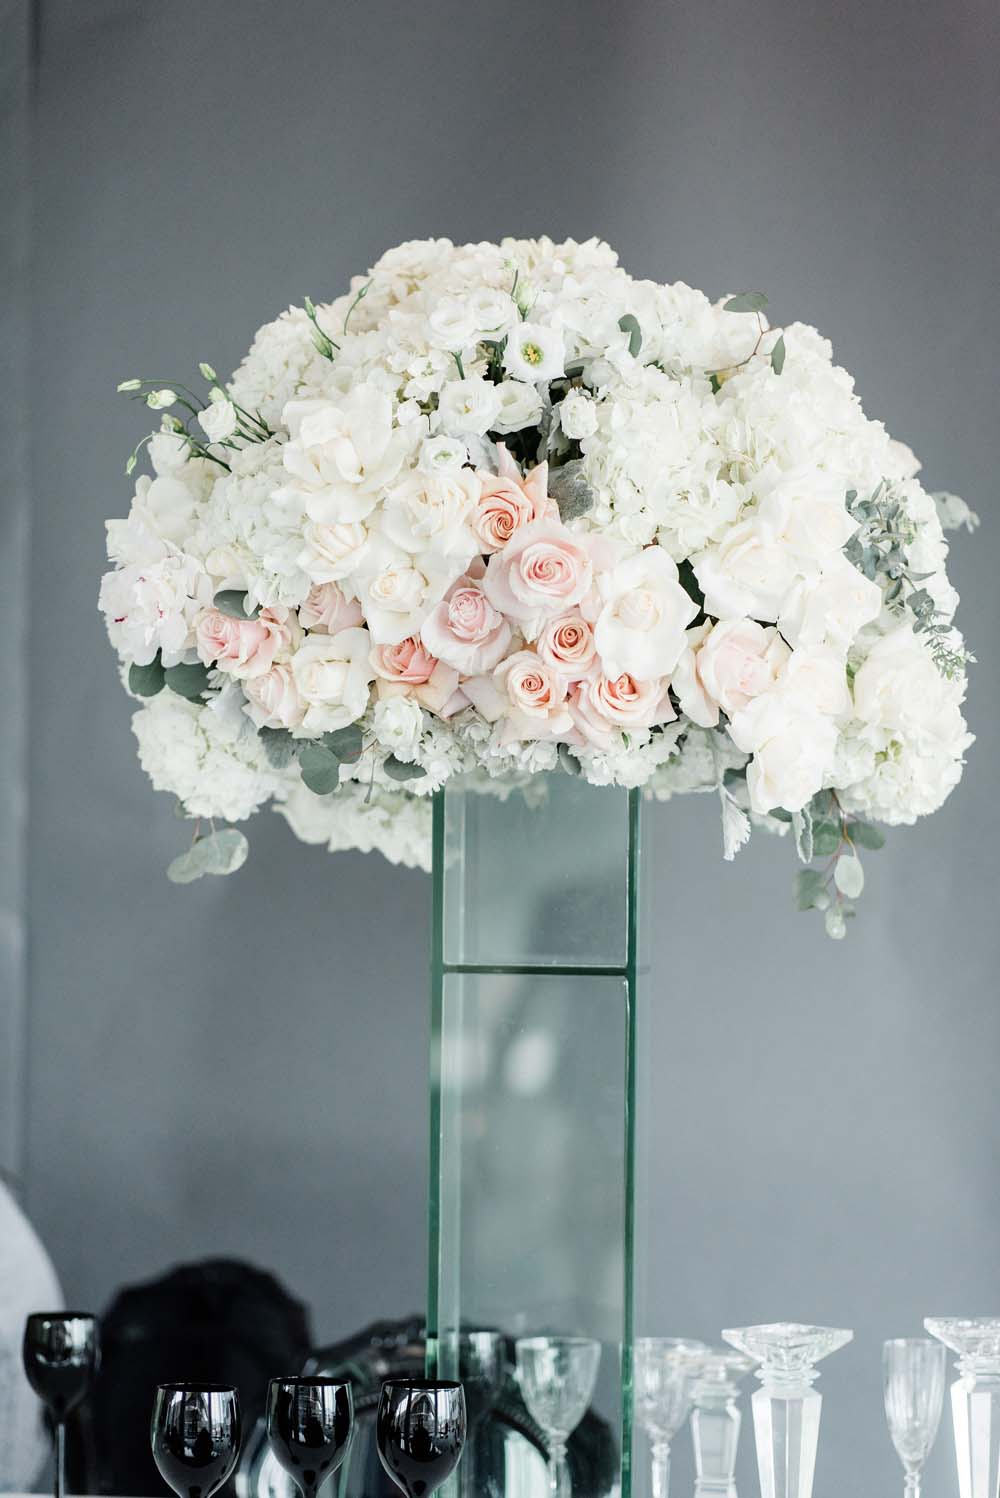 A Sophisticated Black and White Wedding Styled Shoot